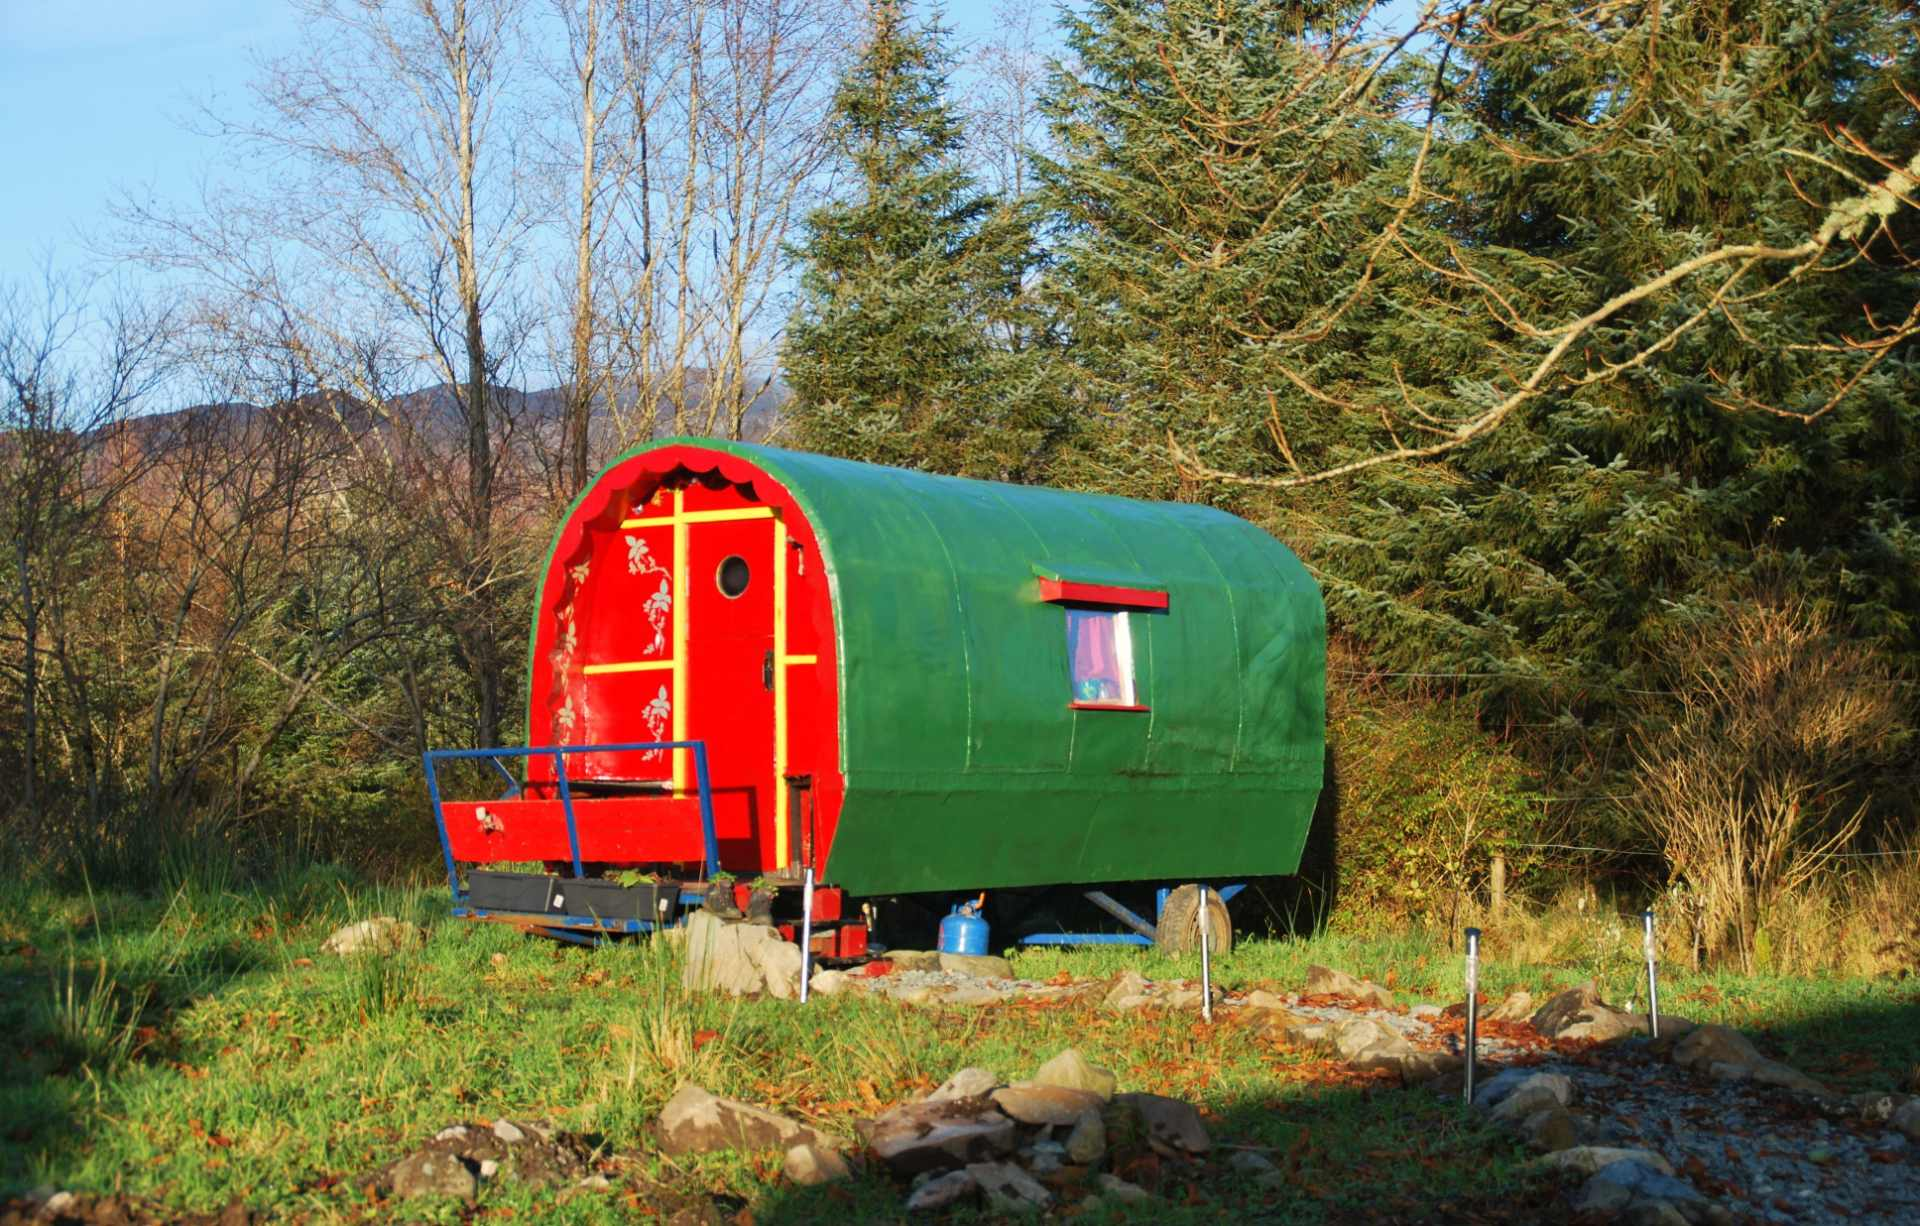 colourful-red-and-green-wonderly-wagon-in-field-and-forest